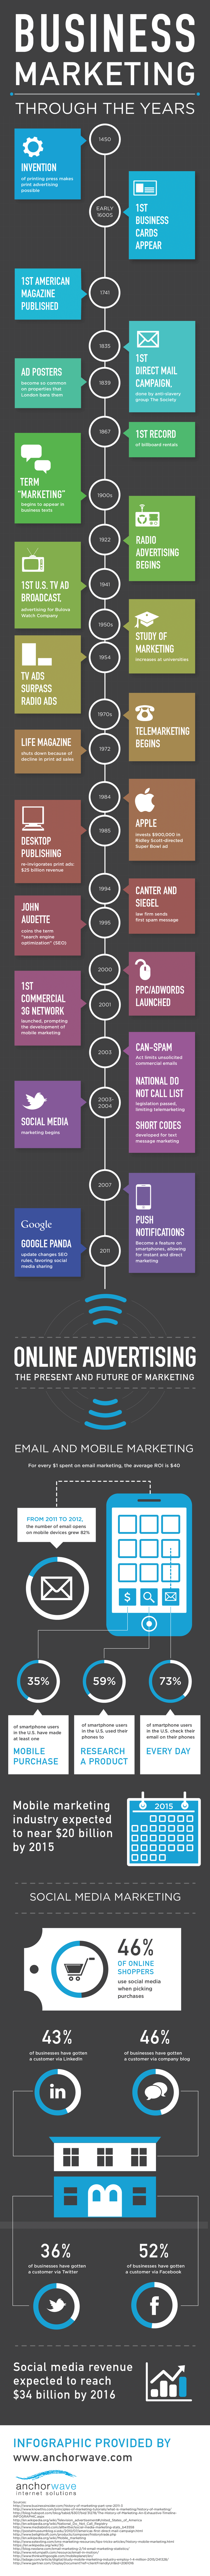 aw-business-marketing-infographic